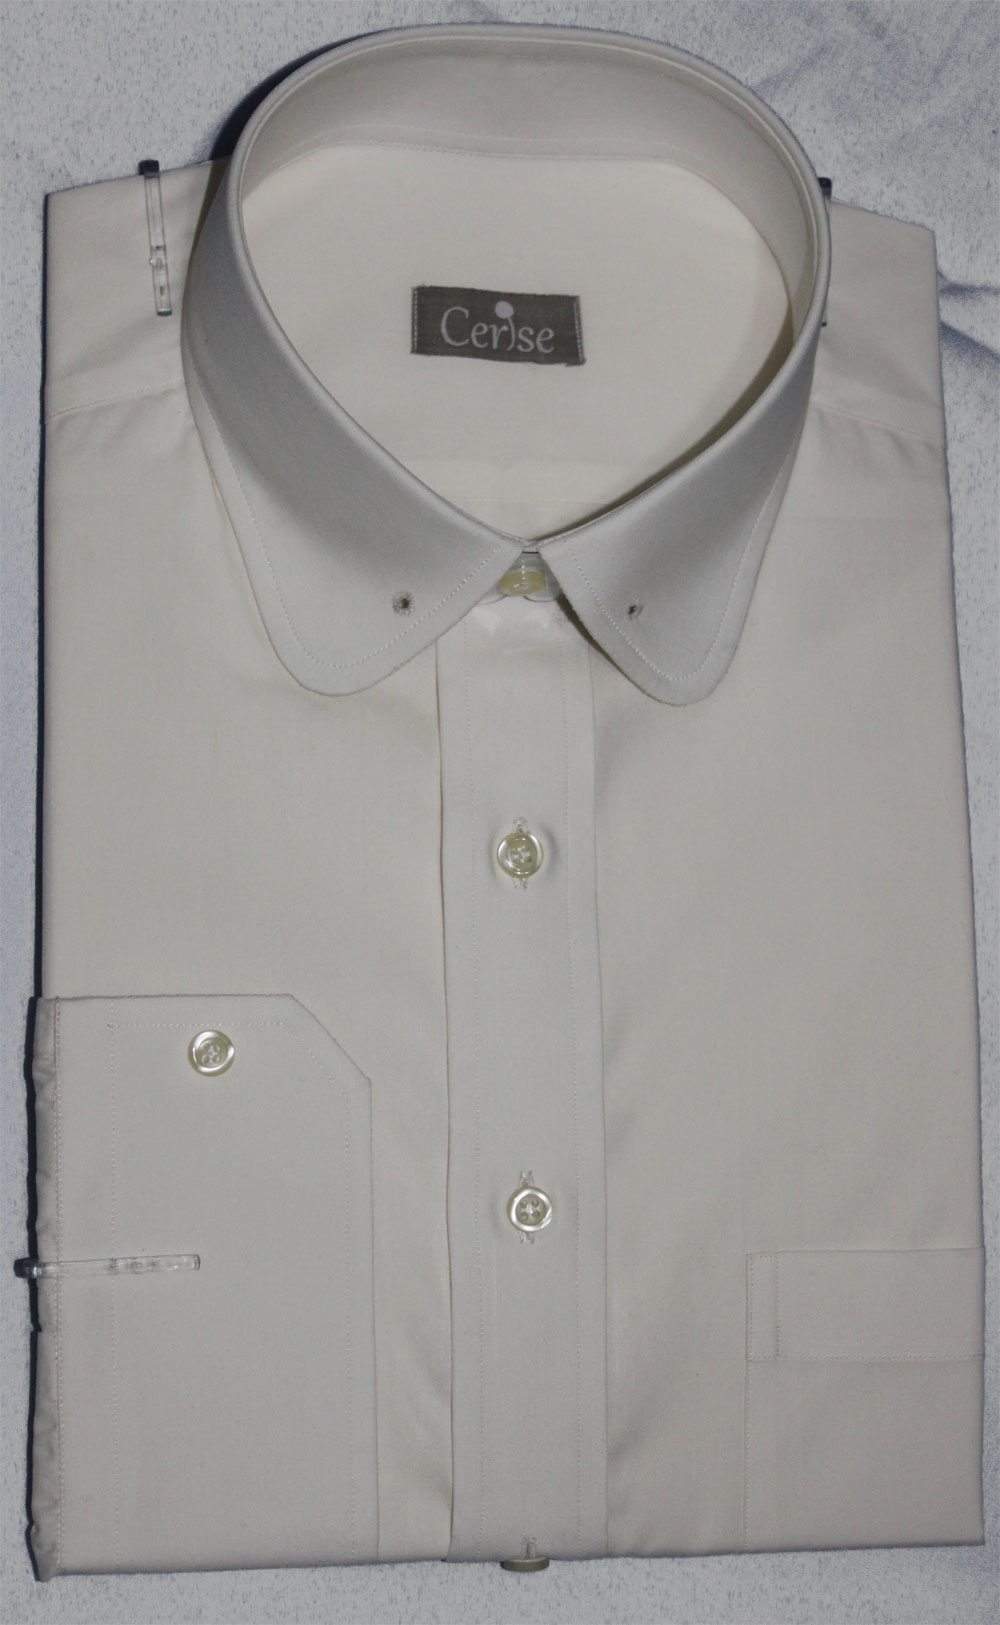 Round pin collar ecru shirt